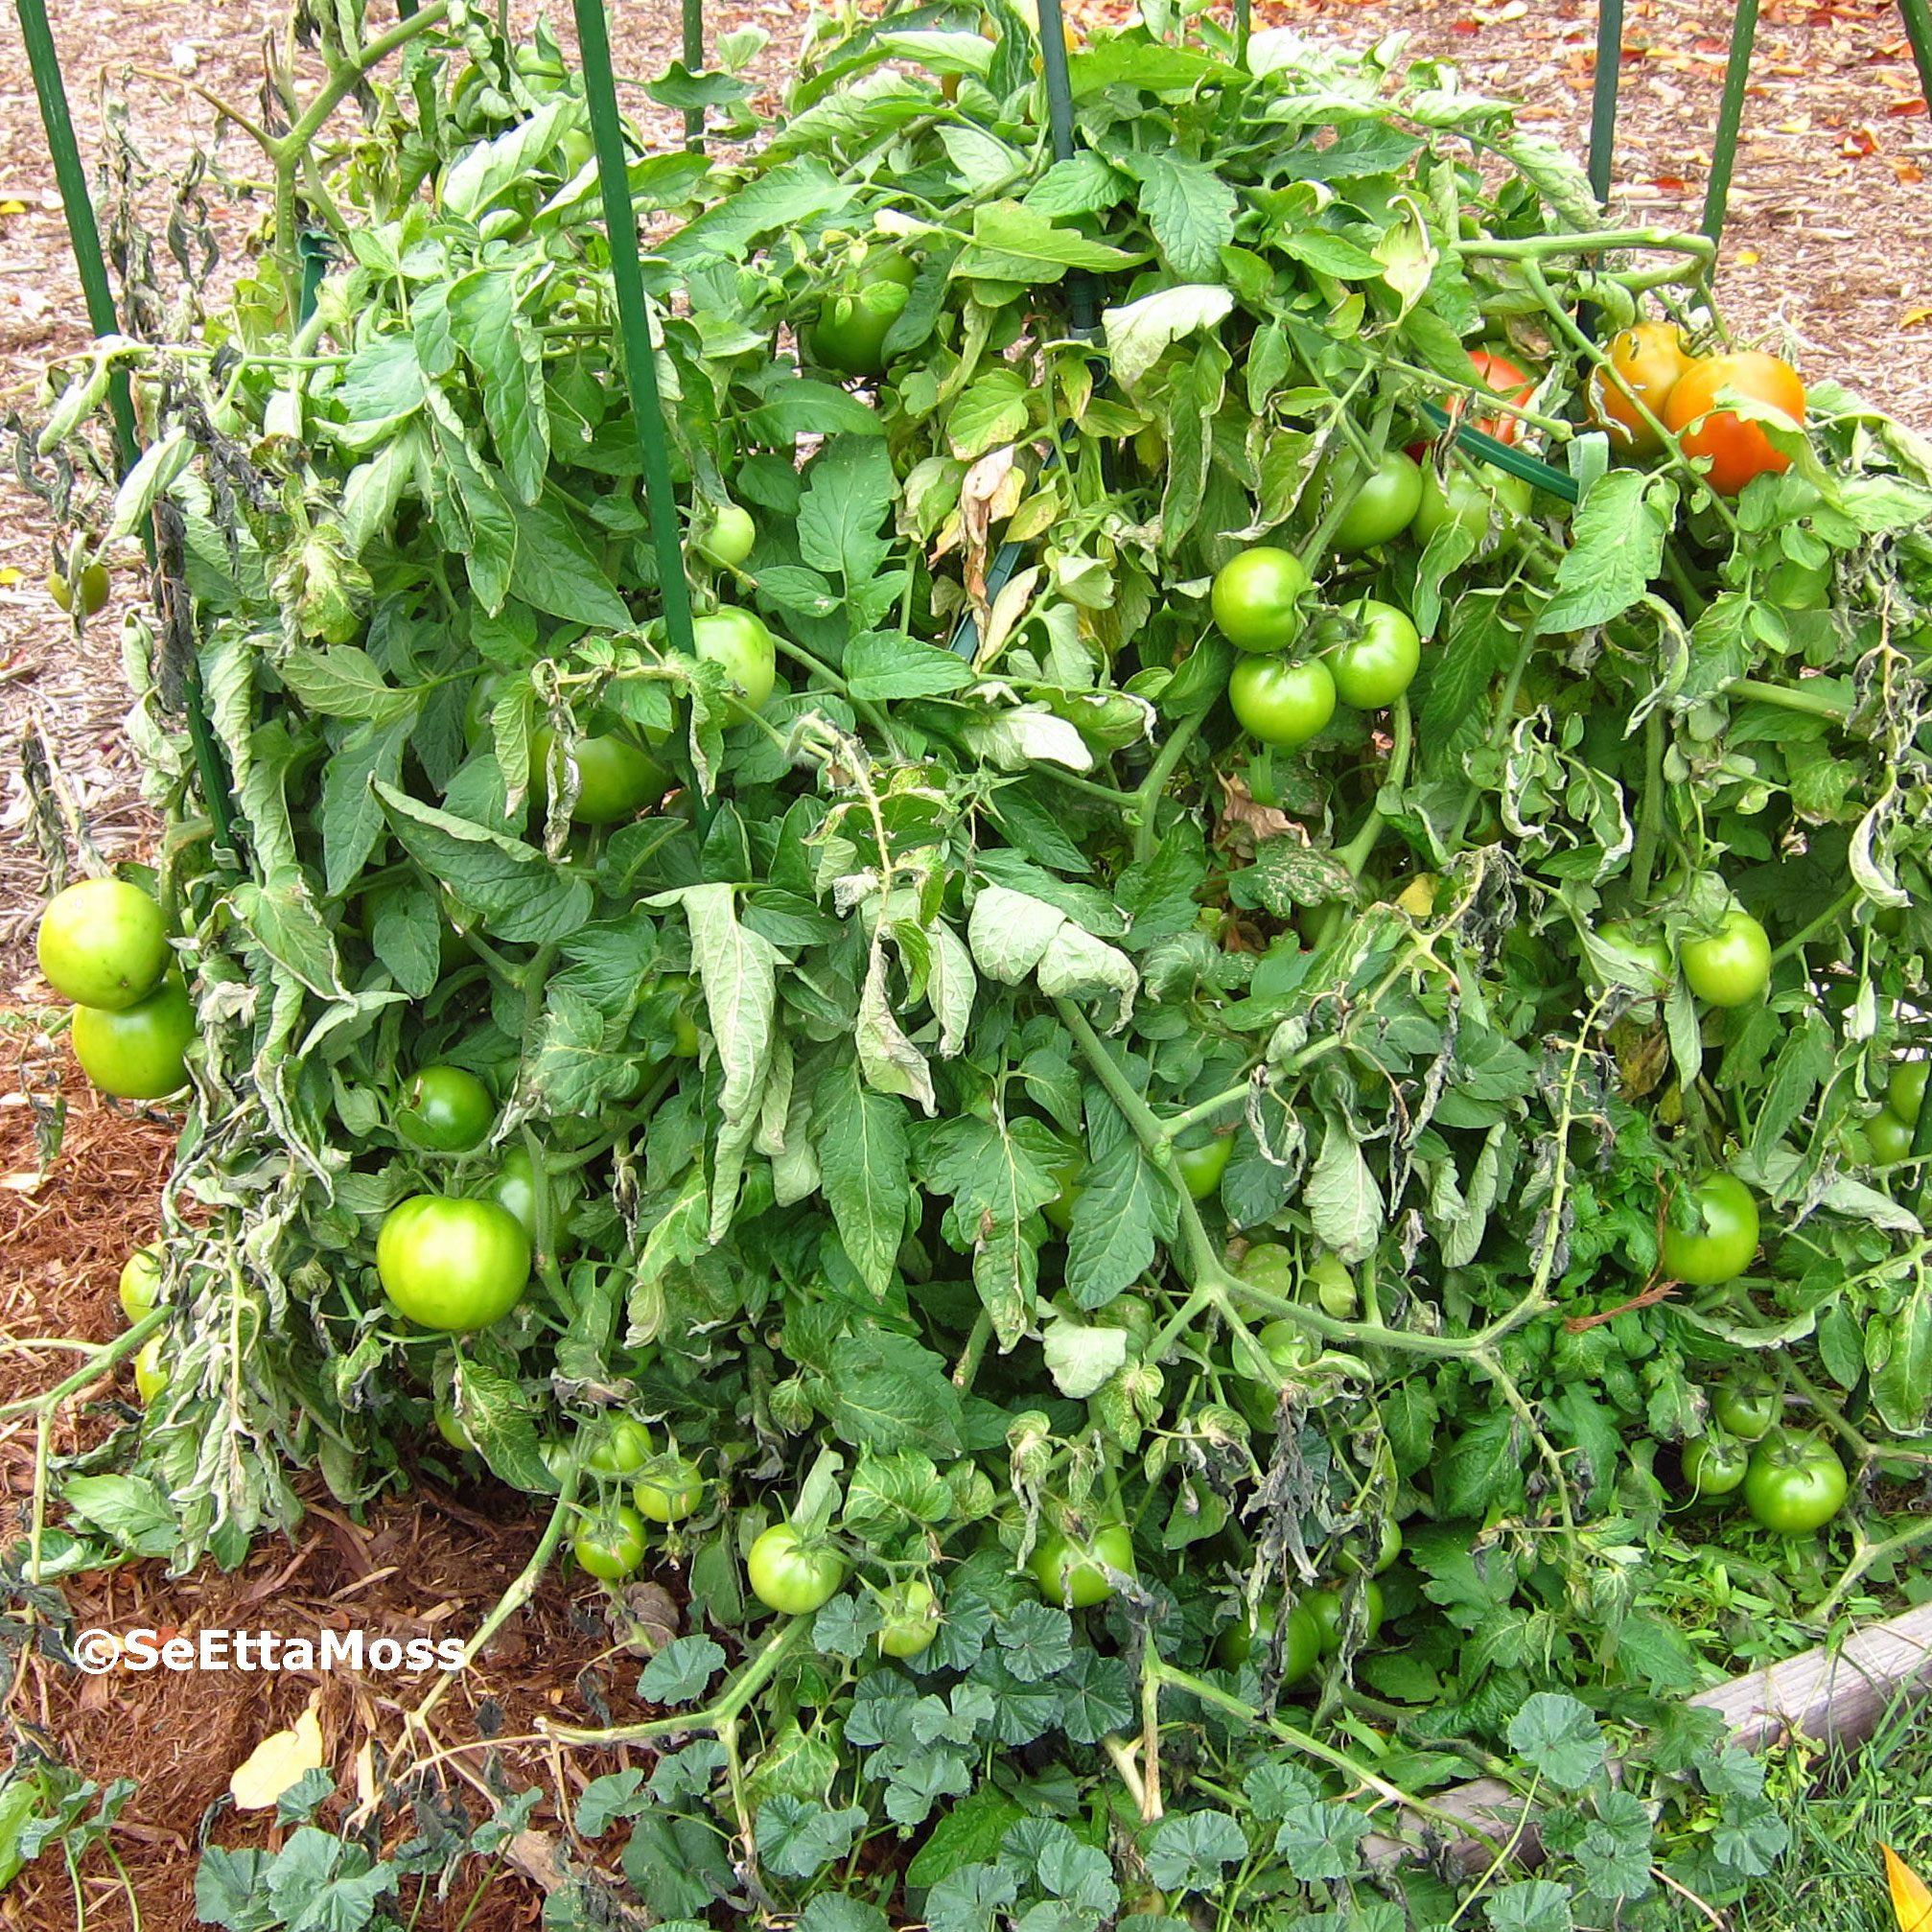 I Got A Late Start This Summer With My Tomato Plant An Organic Better Boy Variety So Harvest Extended Pretty For Southern Front Range Town In